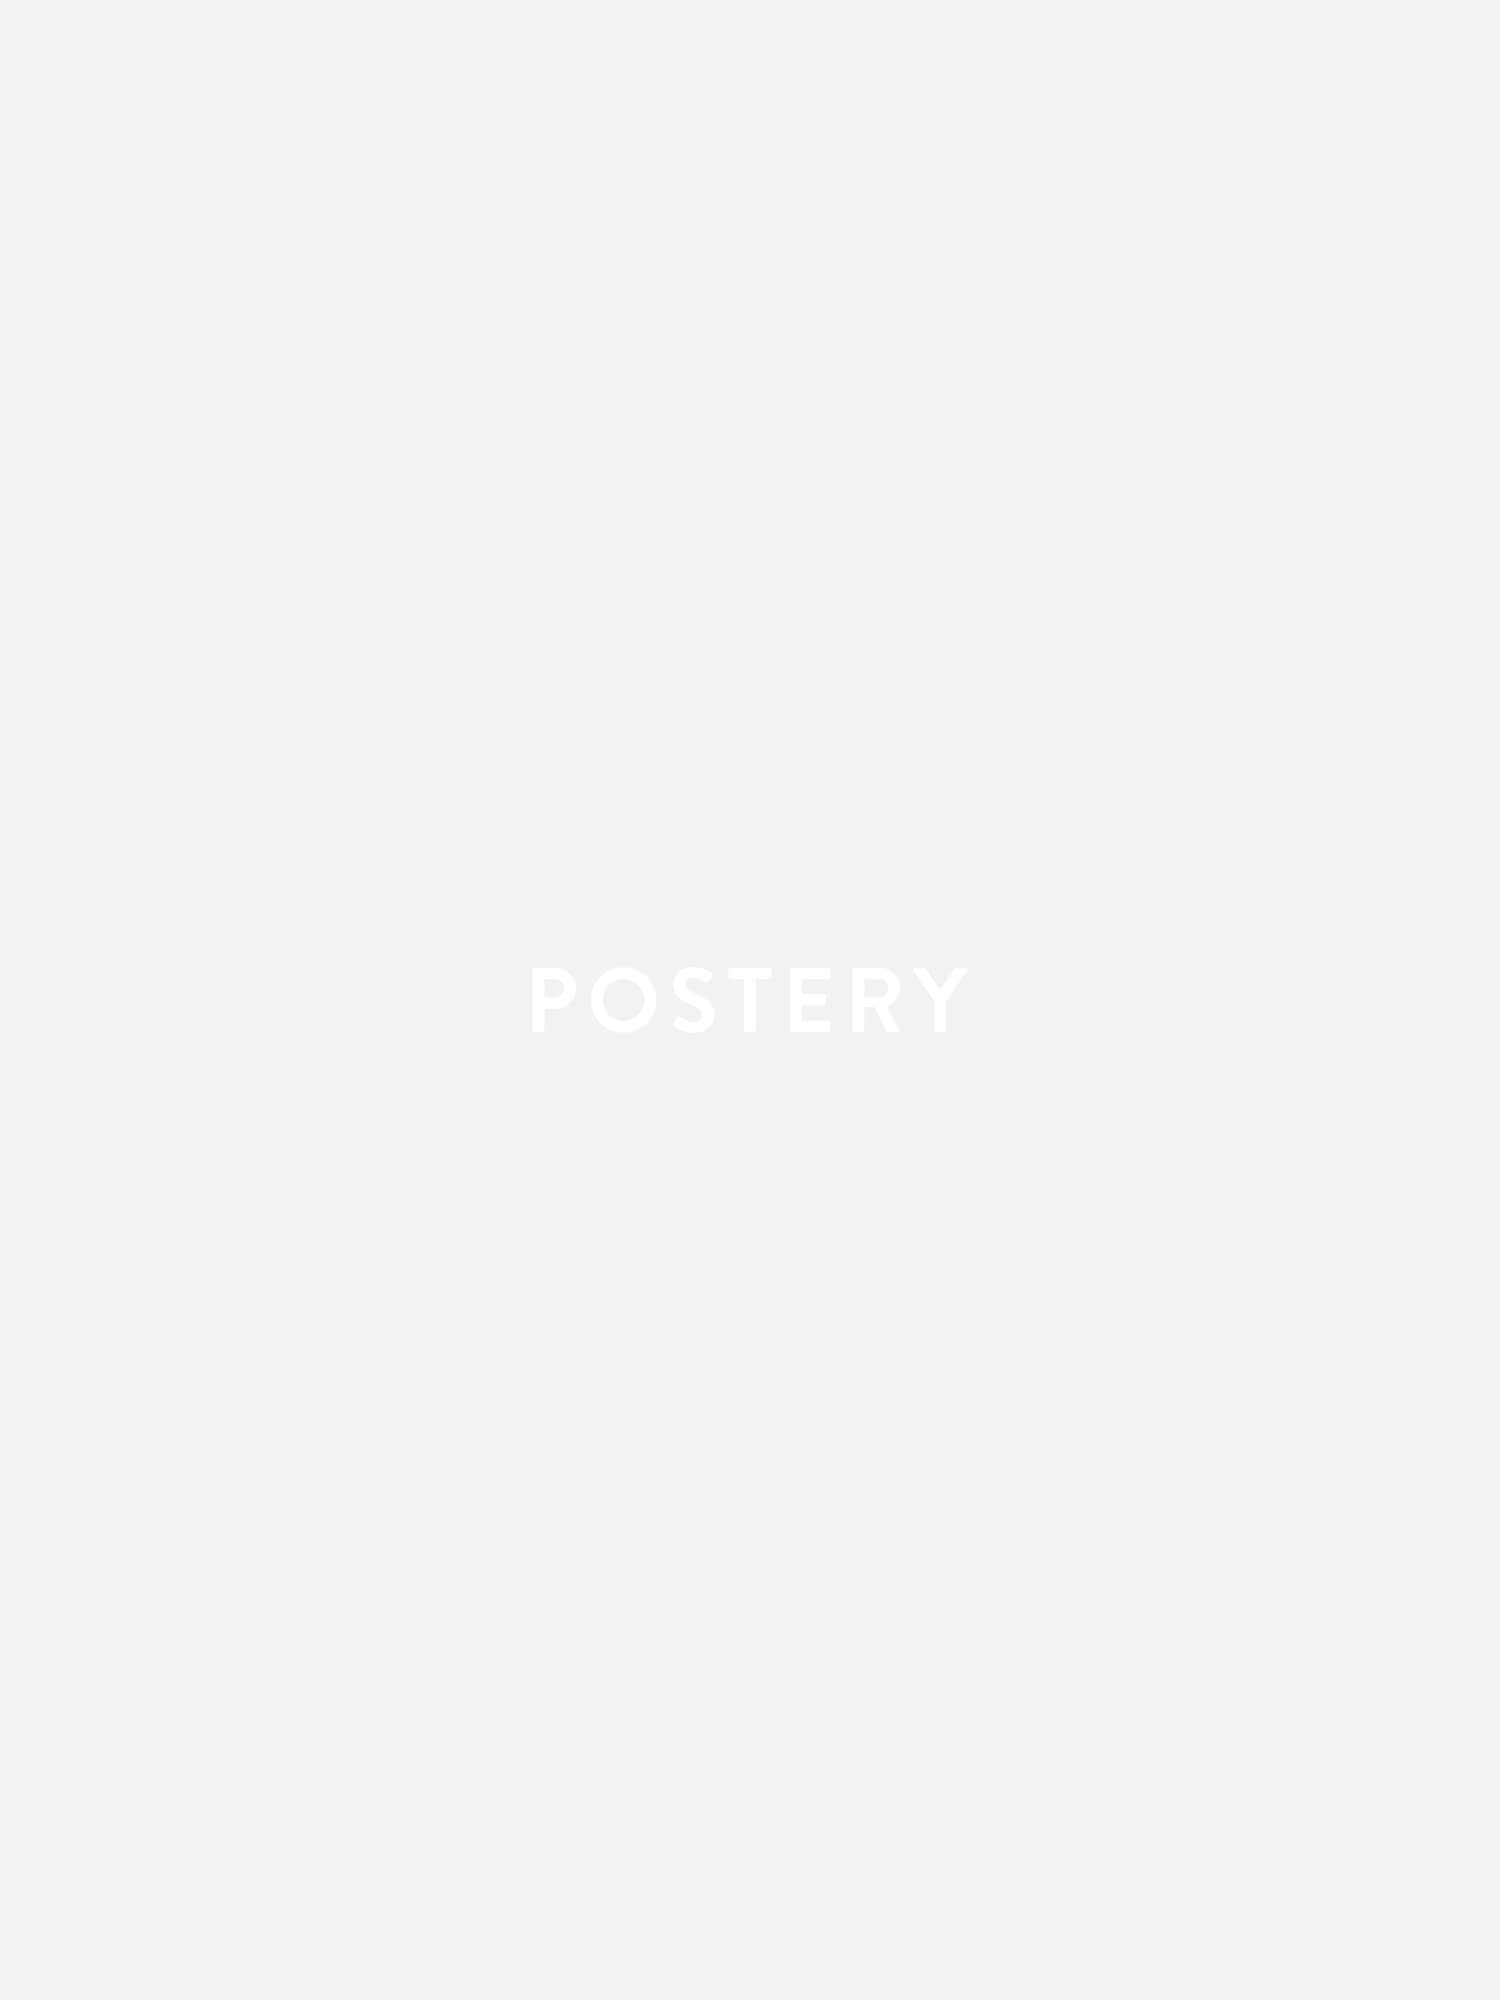 Scallop Shell Poster